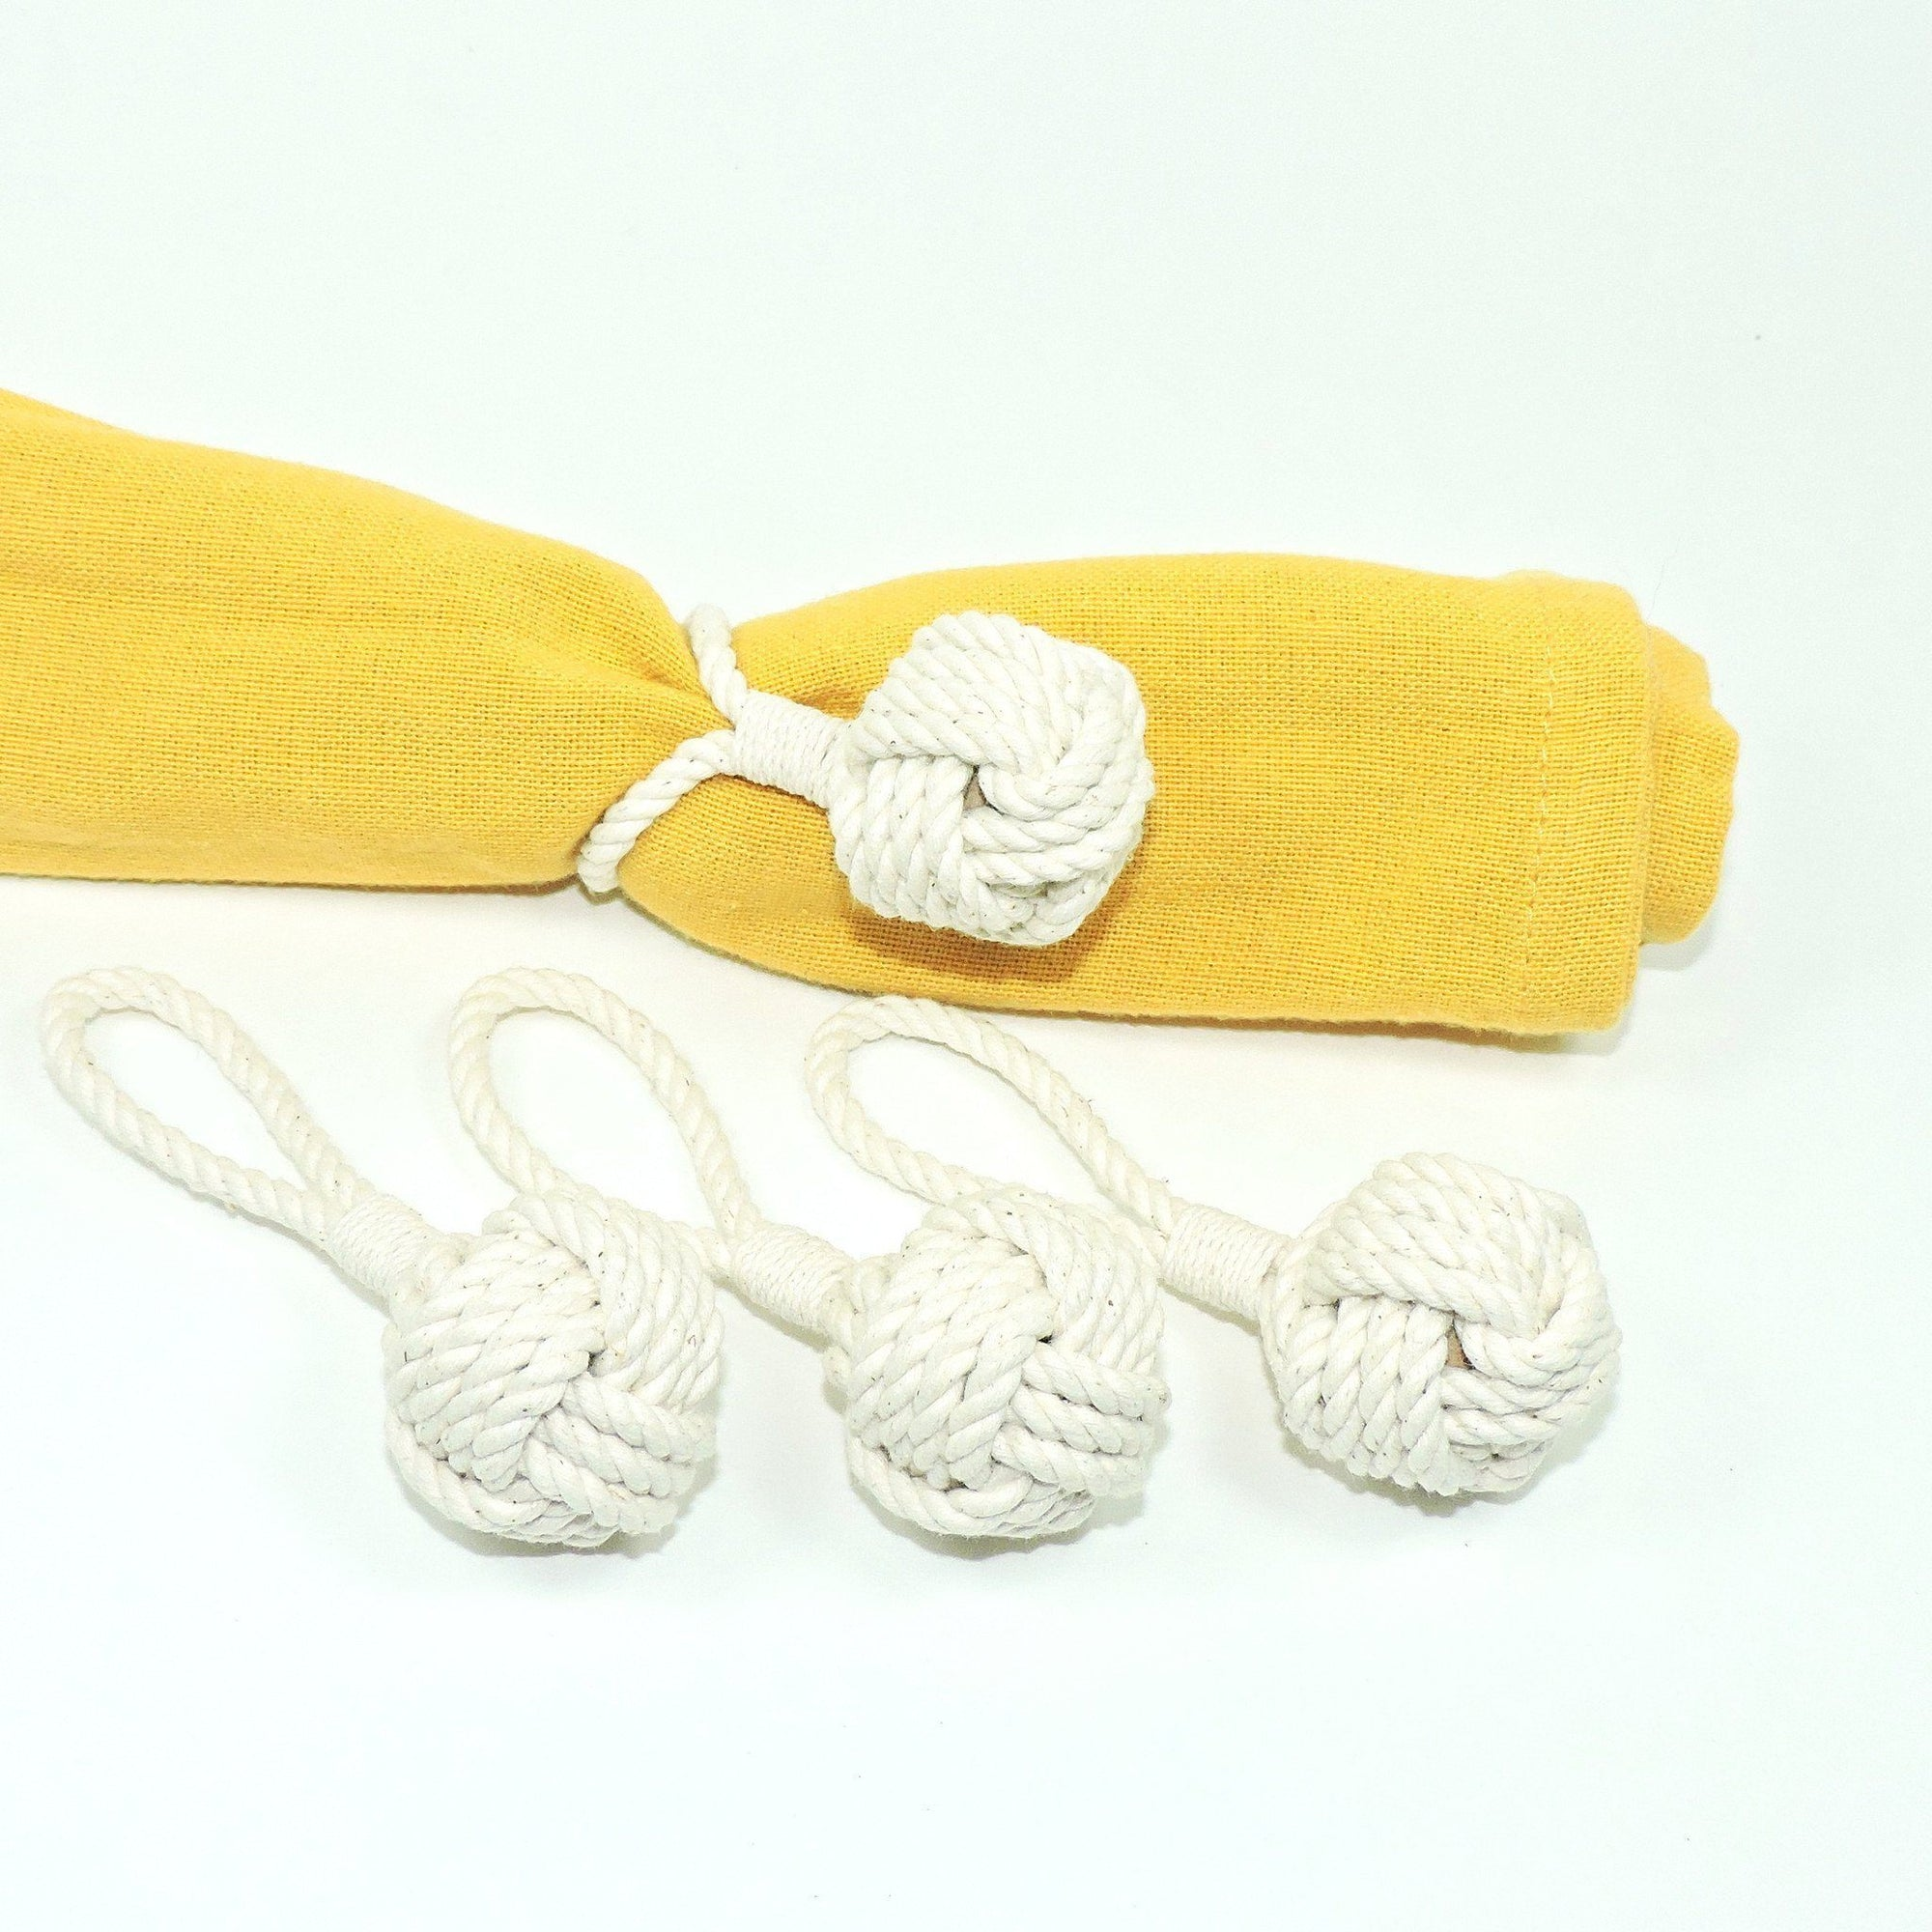 Nautical Knot Monkey Fist Knot Napkin Rings, Set of Four handmade at Mystic Knotwork